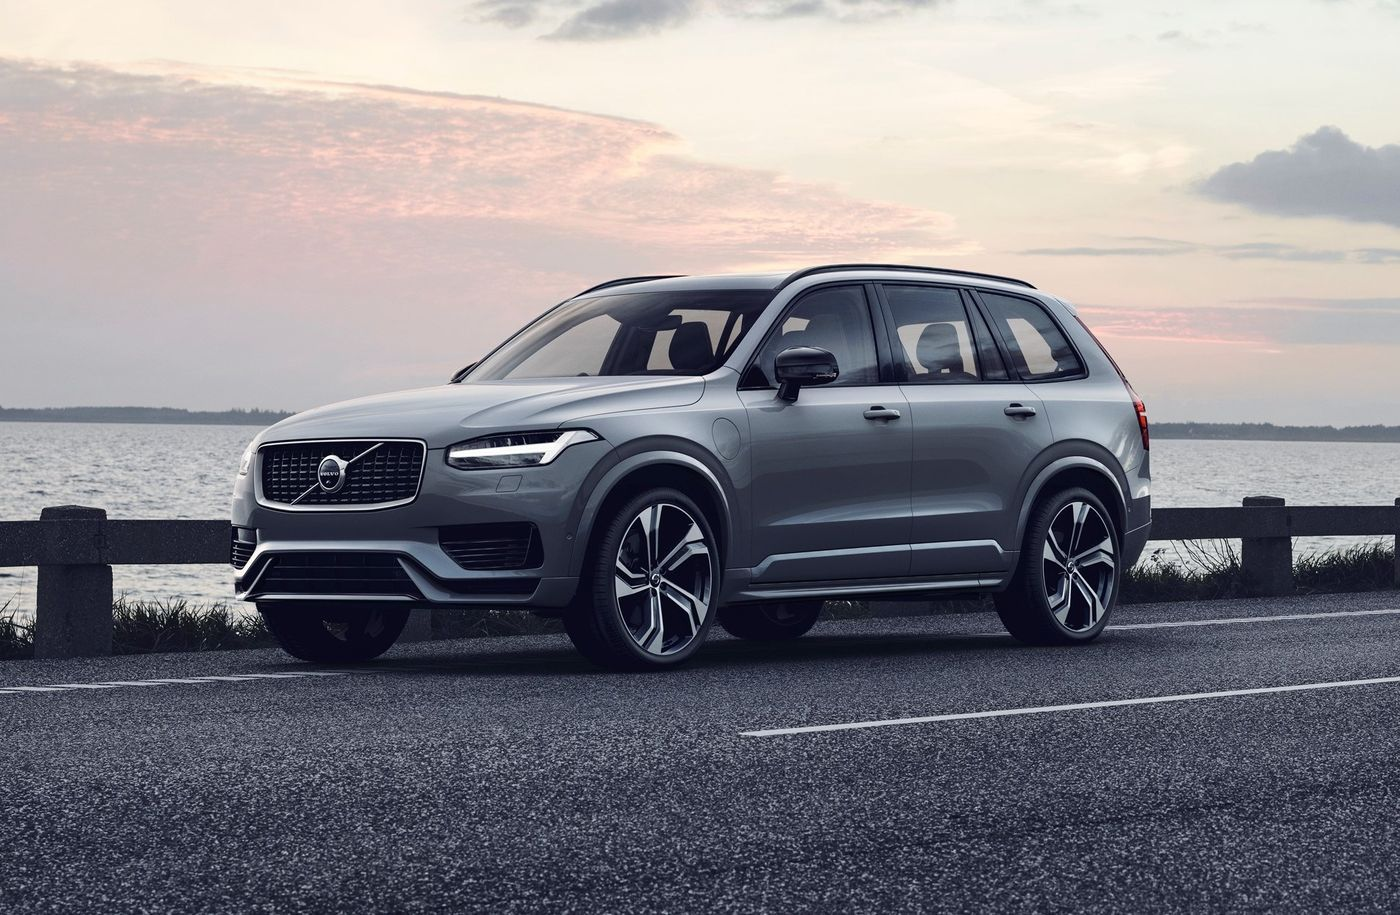 Awesome Review Volvo Xc90 T8 Hybrid R Design Pro And Images And View In 2020 Volvo Xc90 Volvo Suv Volvo Xc60